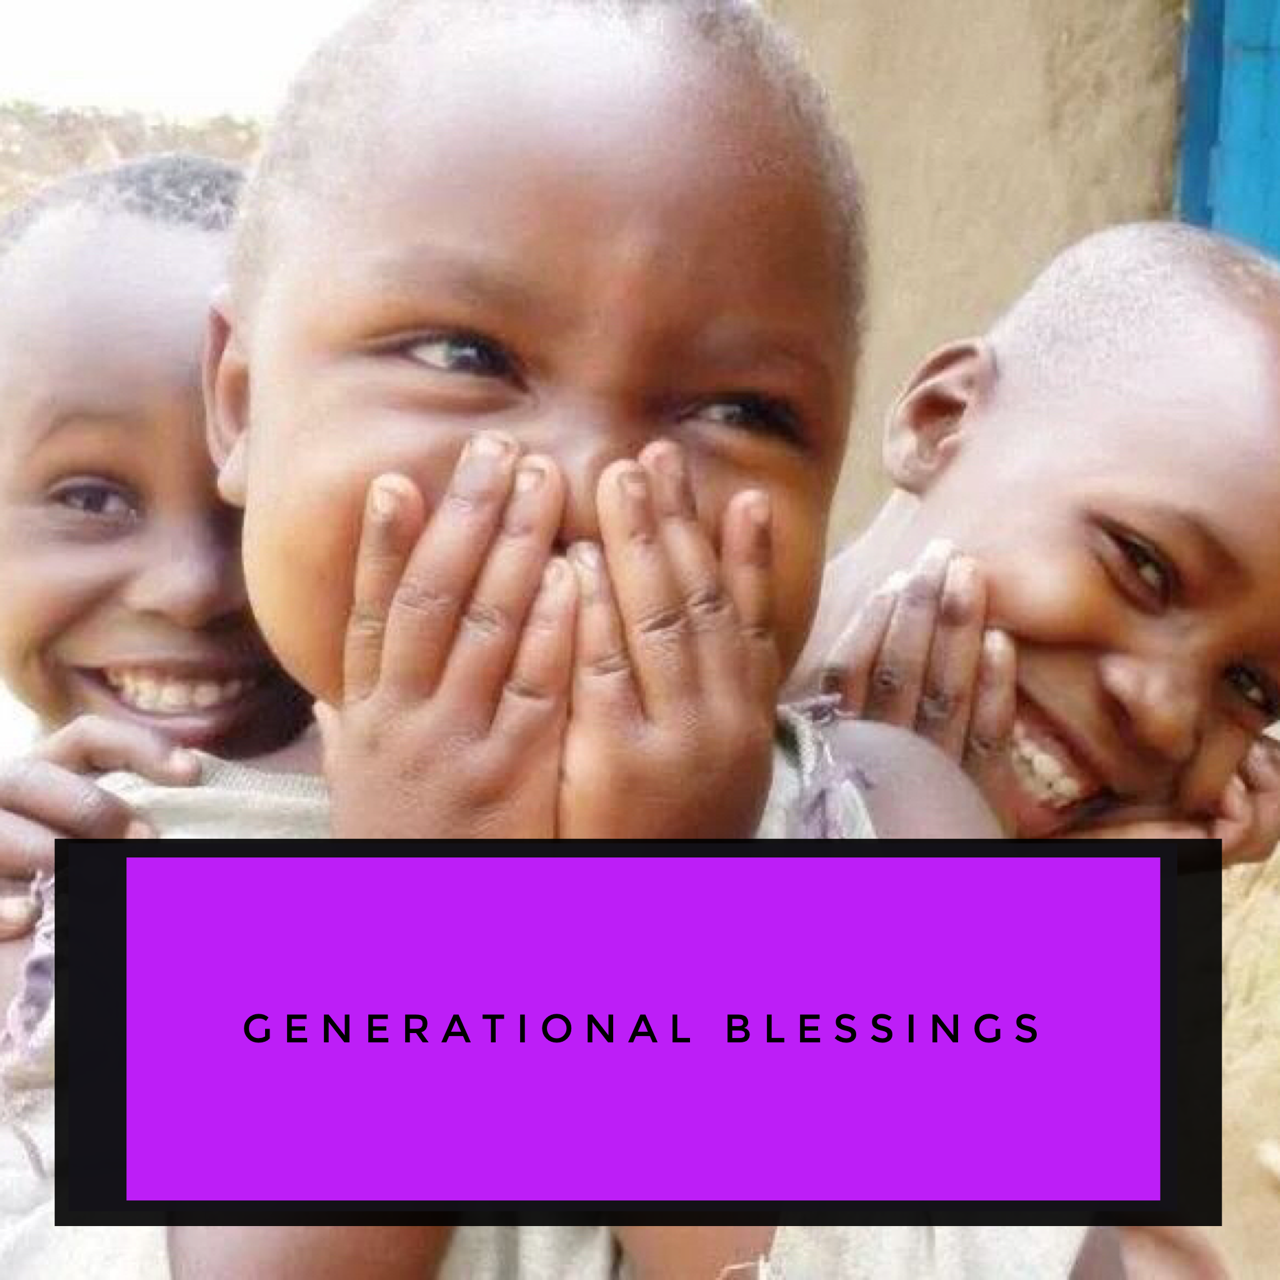 Receiving generational blessings